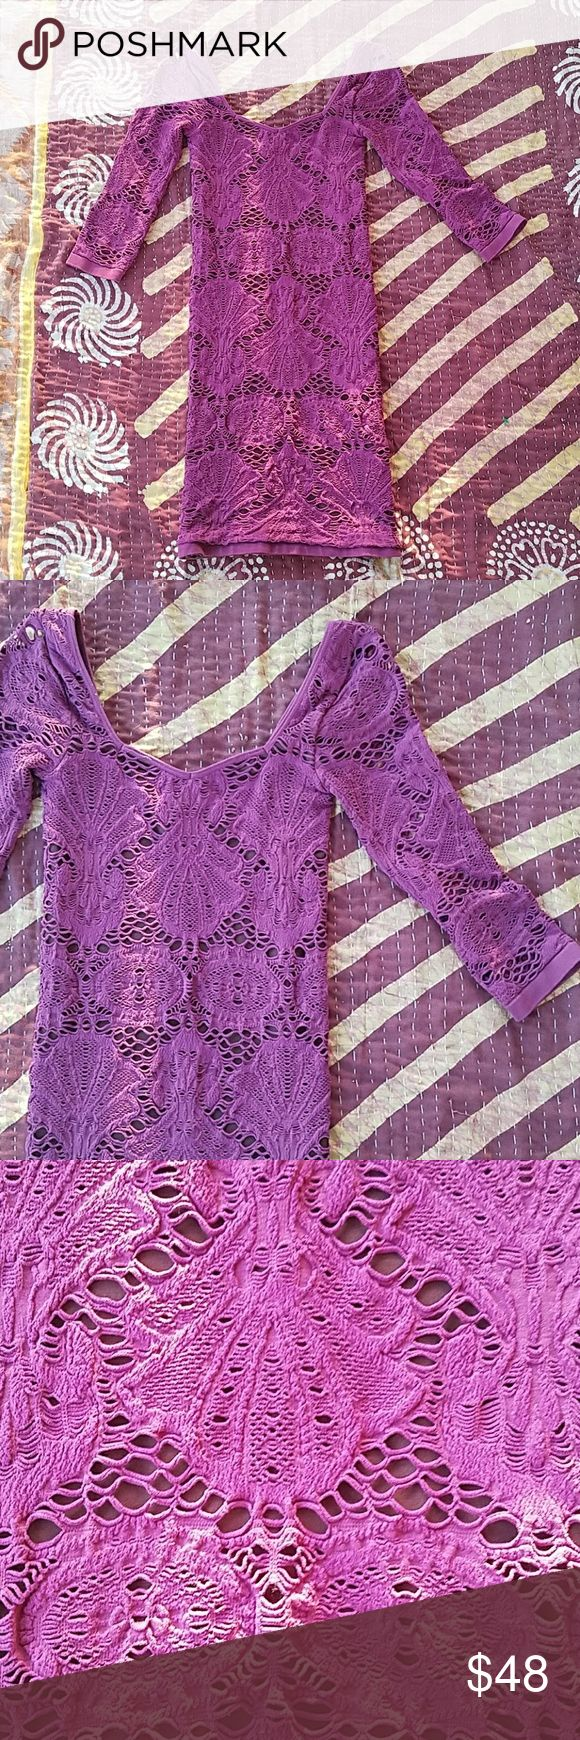 Intimately Free People Mesh Bodycon Mini Dress XS Plum purple in an intricate design Stretch mesh fabric Scoop neckline 3-4 sleeves, mini length Fitted bodycon style  Made by Intimately Free People size XS  In good condition Free People Dresses Mini